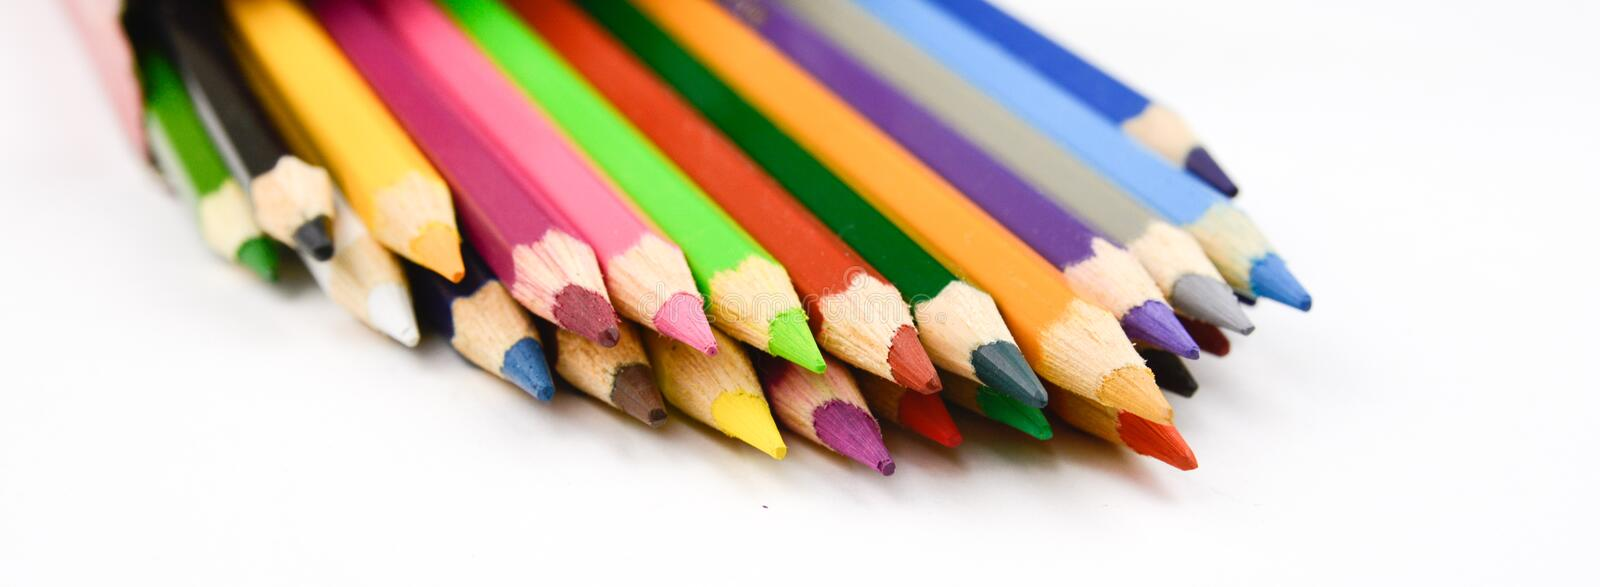 Watercolor multicolored drawing pencils on white background.  royalty free stock photography